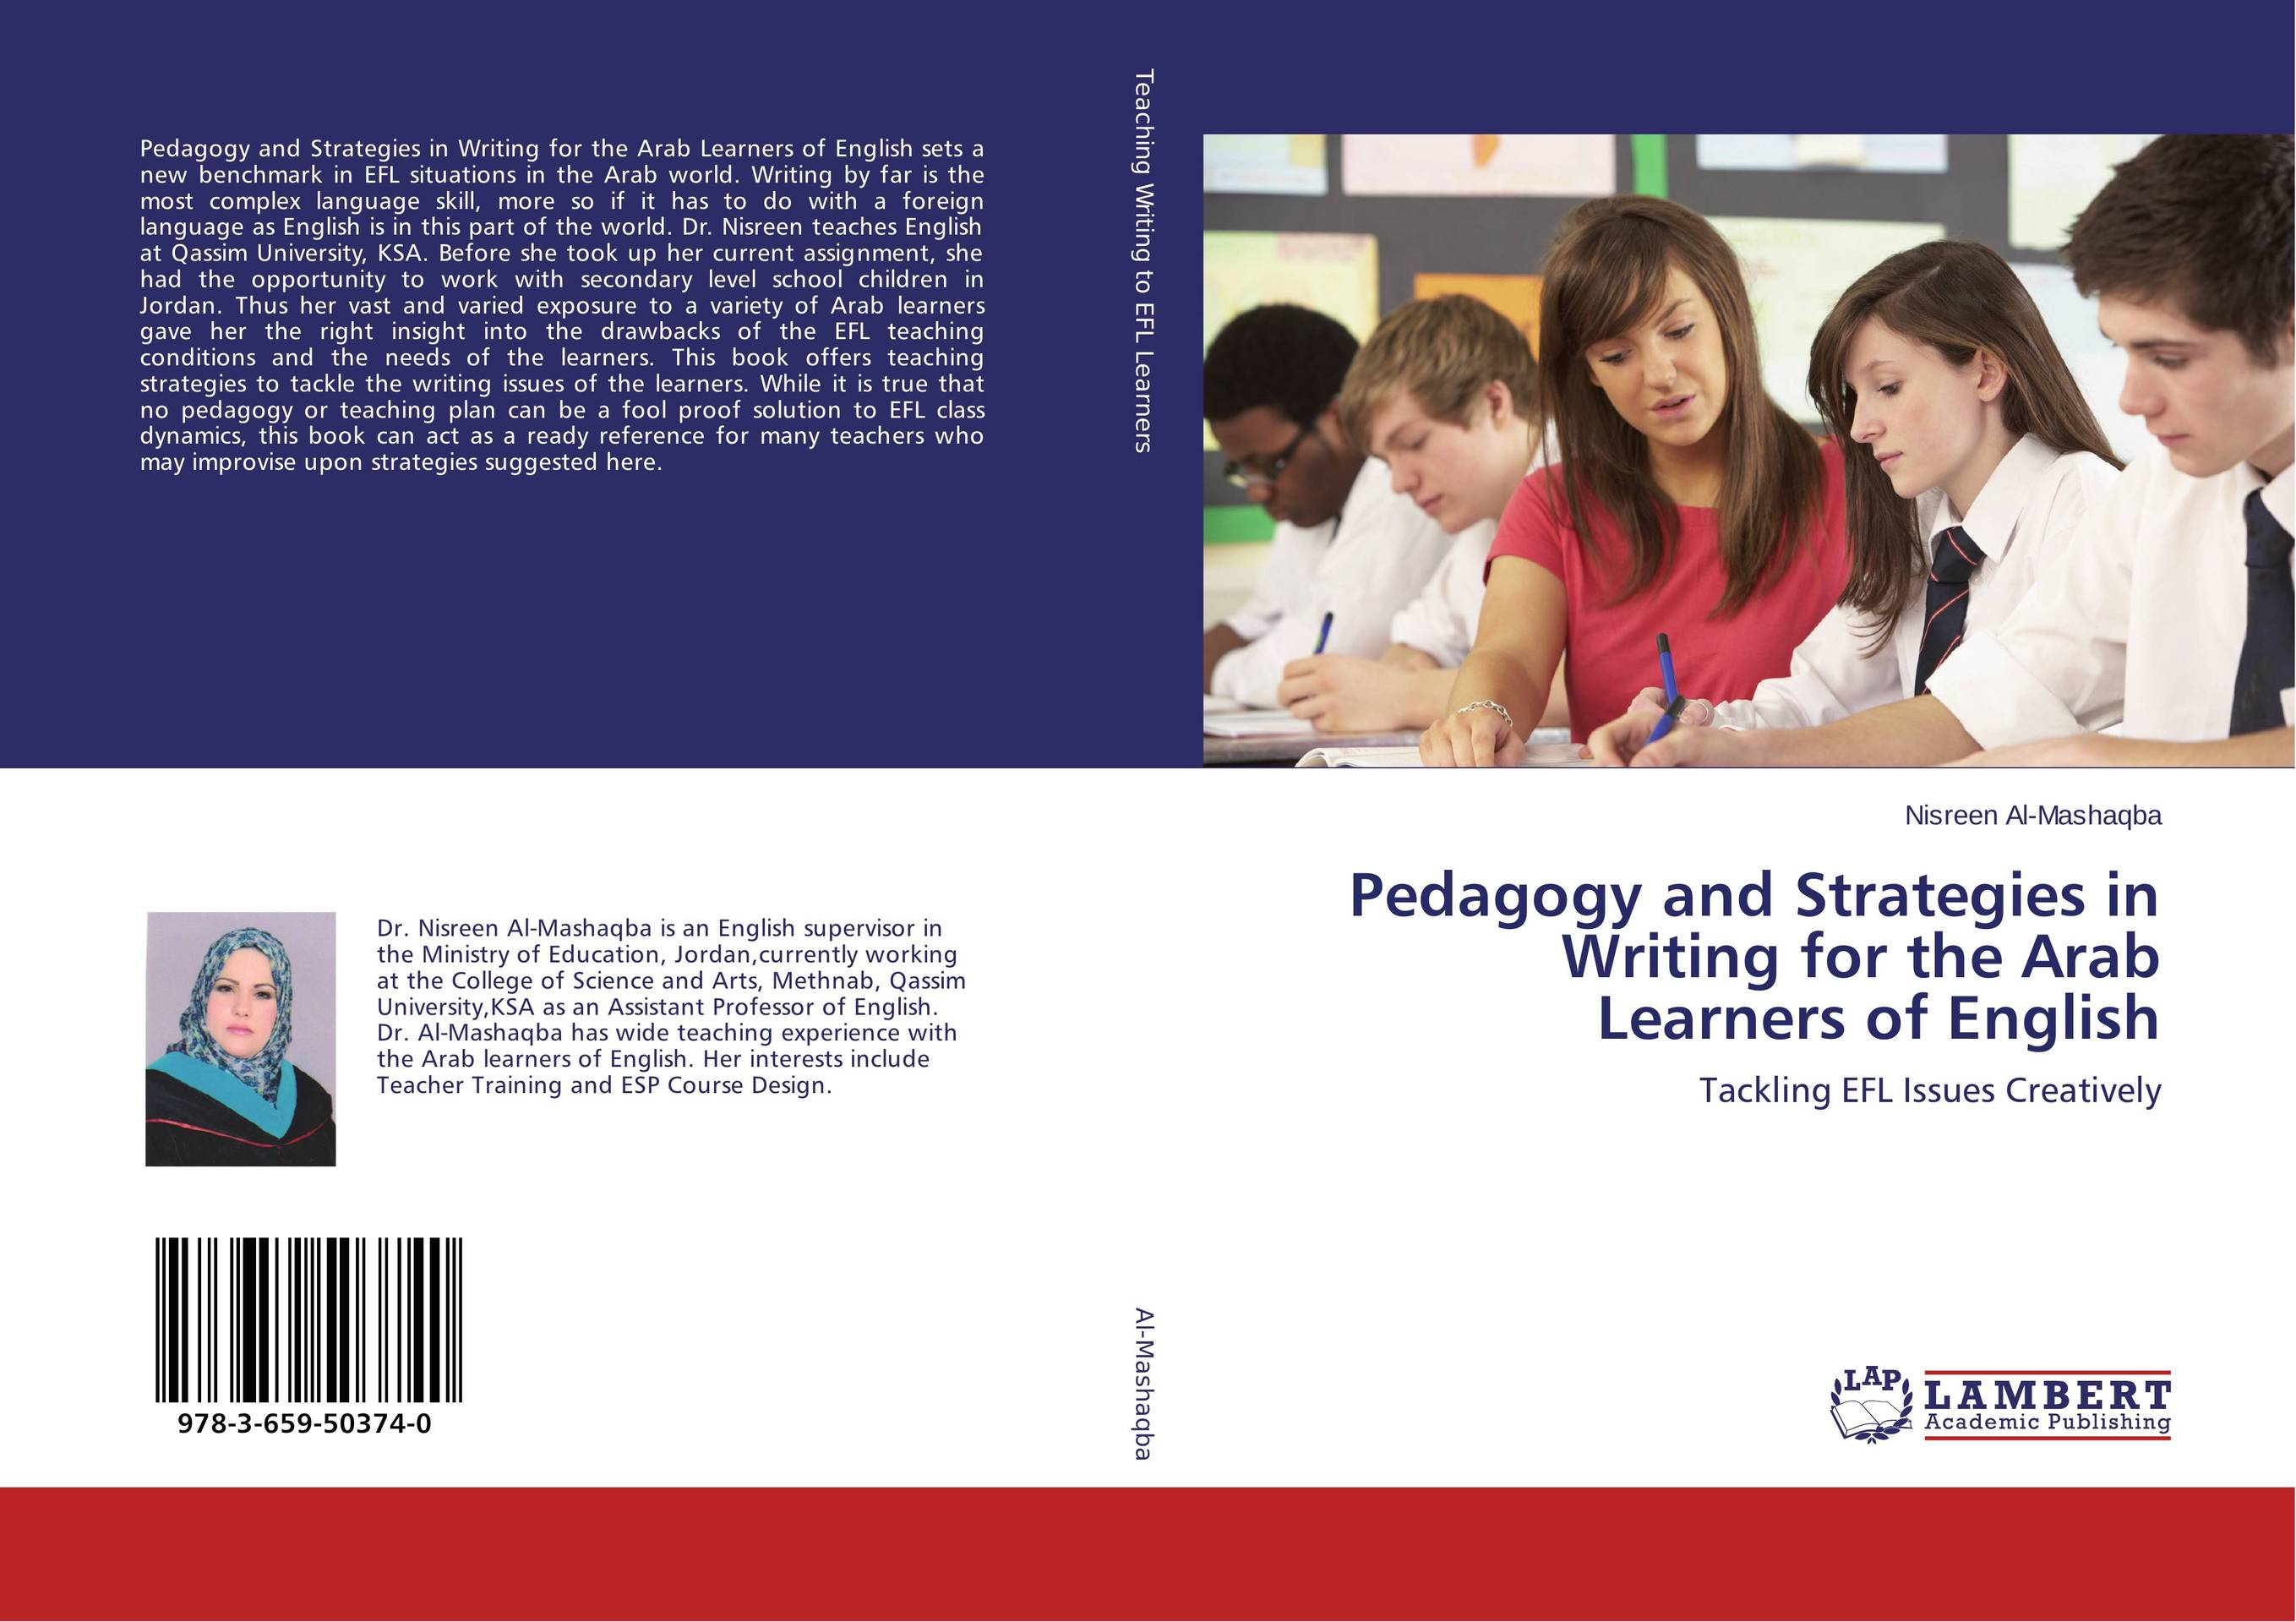 Pedagogy and Strategies in Writing for the Arab Learners of English attitudes to bilingualism among japanese learners of english